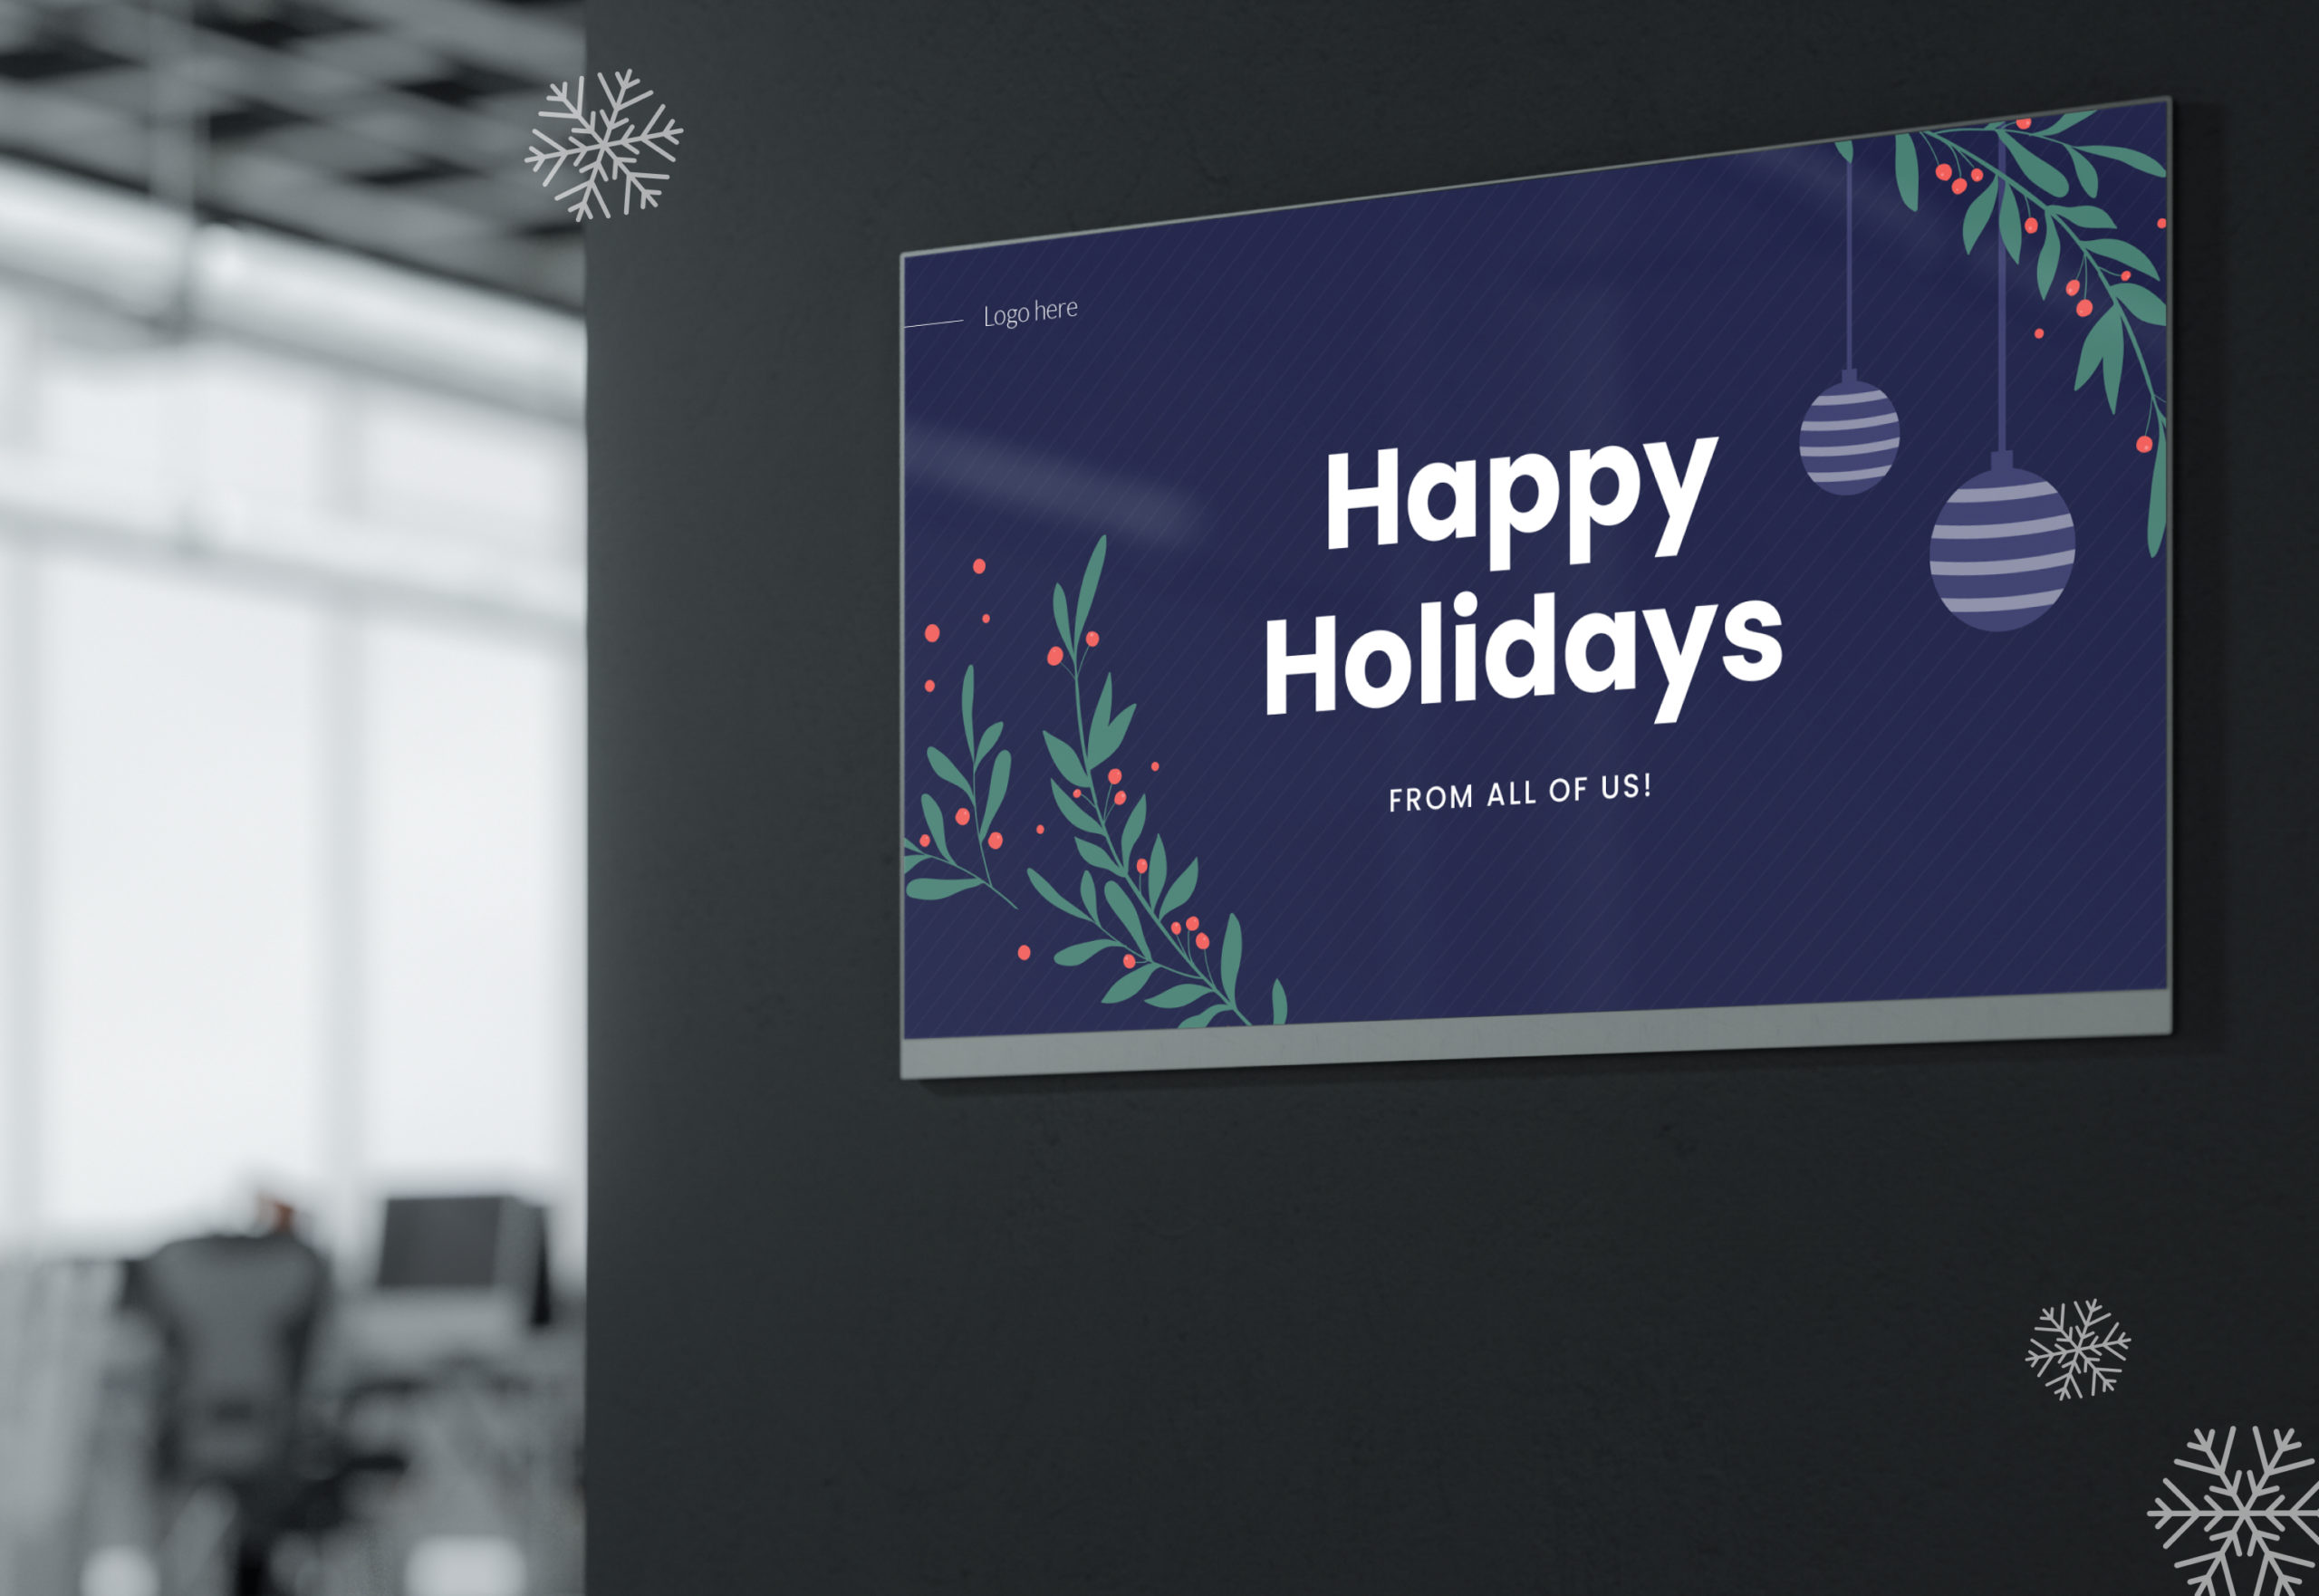 How To Design Heavenly Holiday Digital Signage Content + [Free Templates]